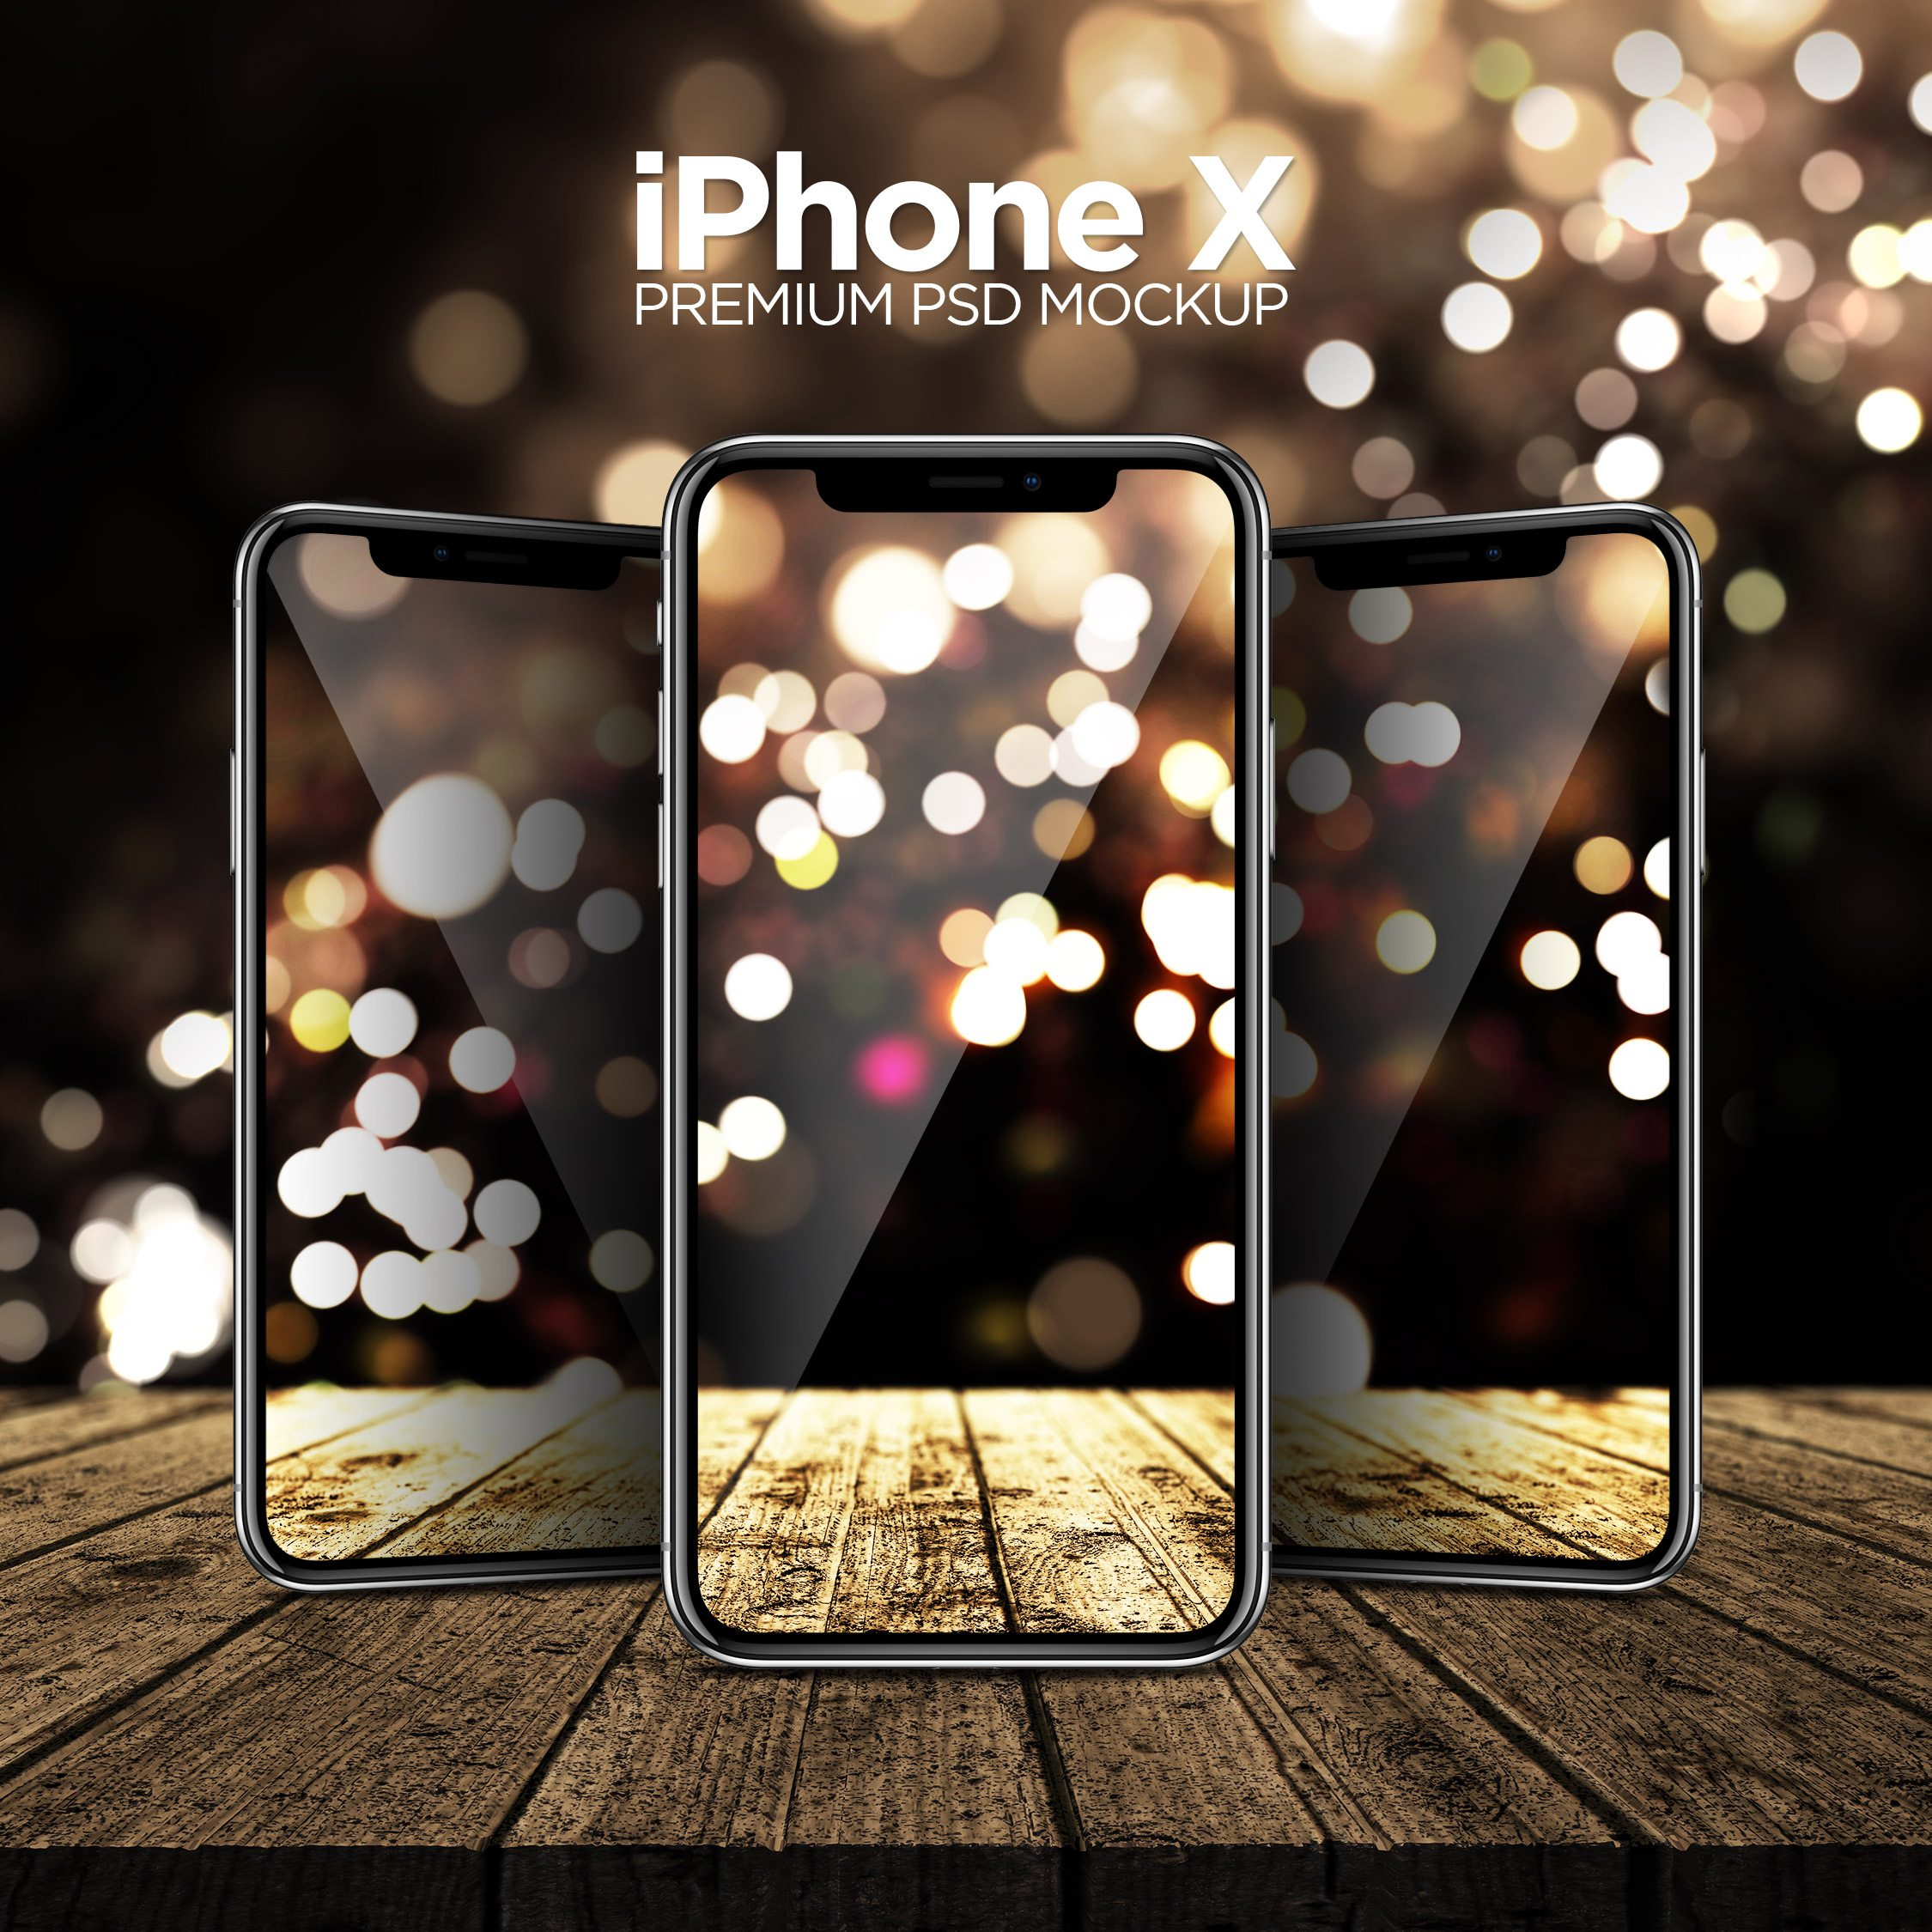 iPhone X Premium PSD Mockup